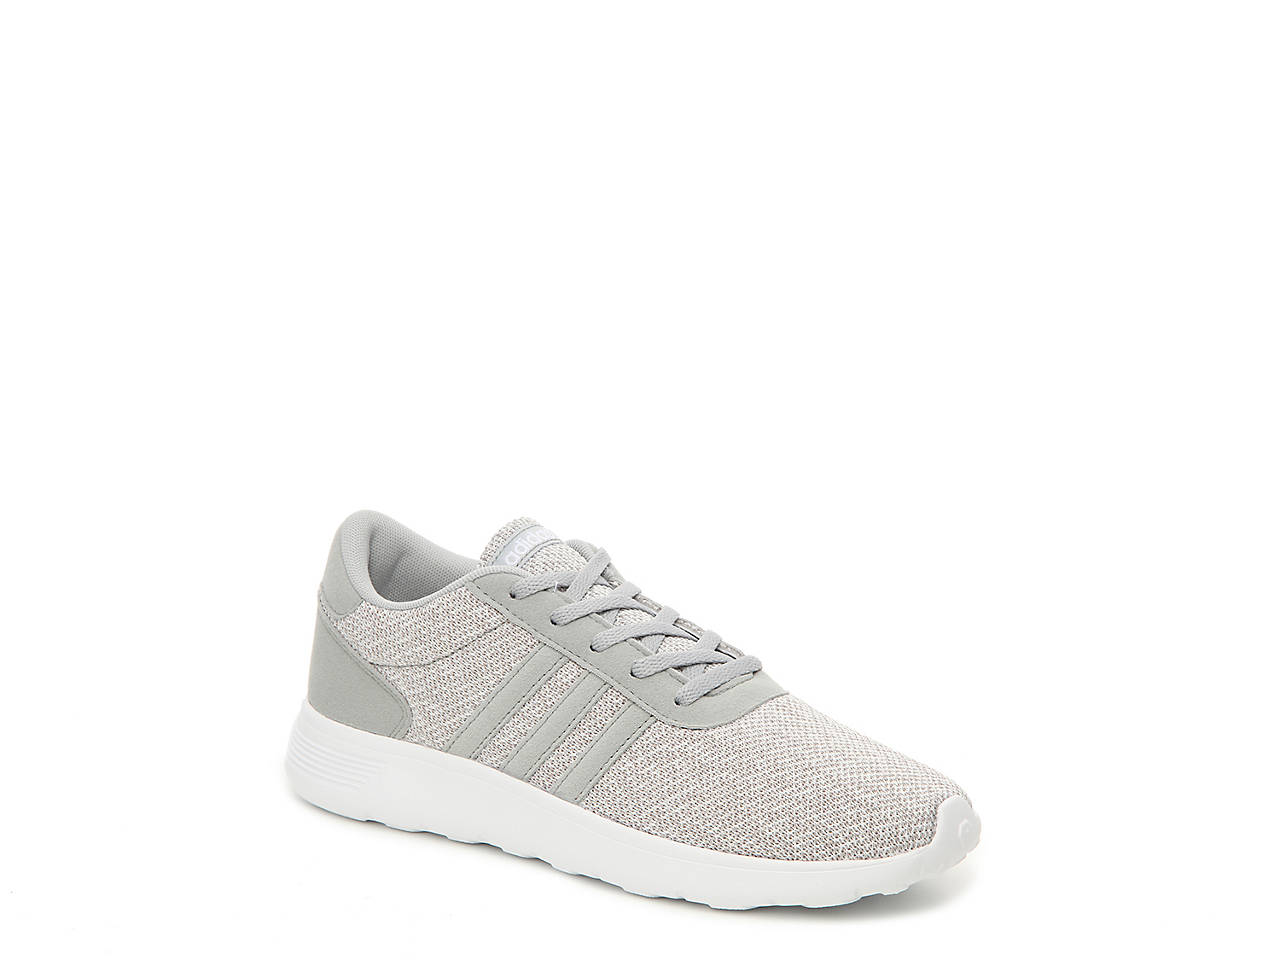 e6756bb514381 adidas Lite Racer Youth Sneaker Kids Shoes